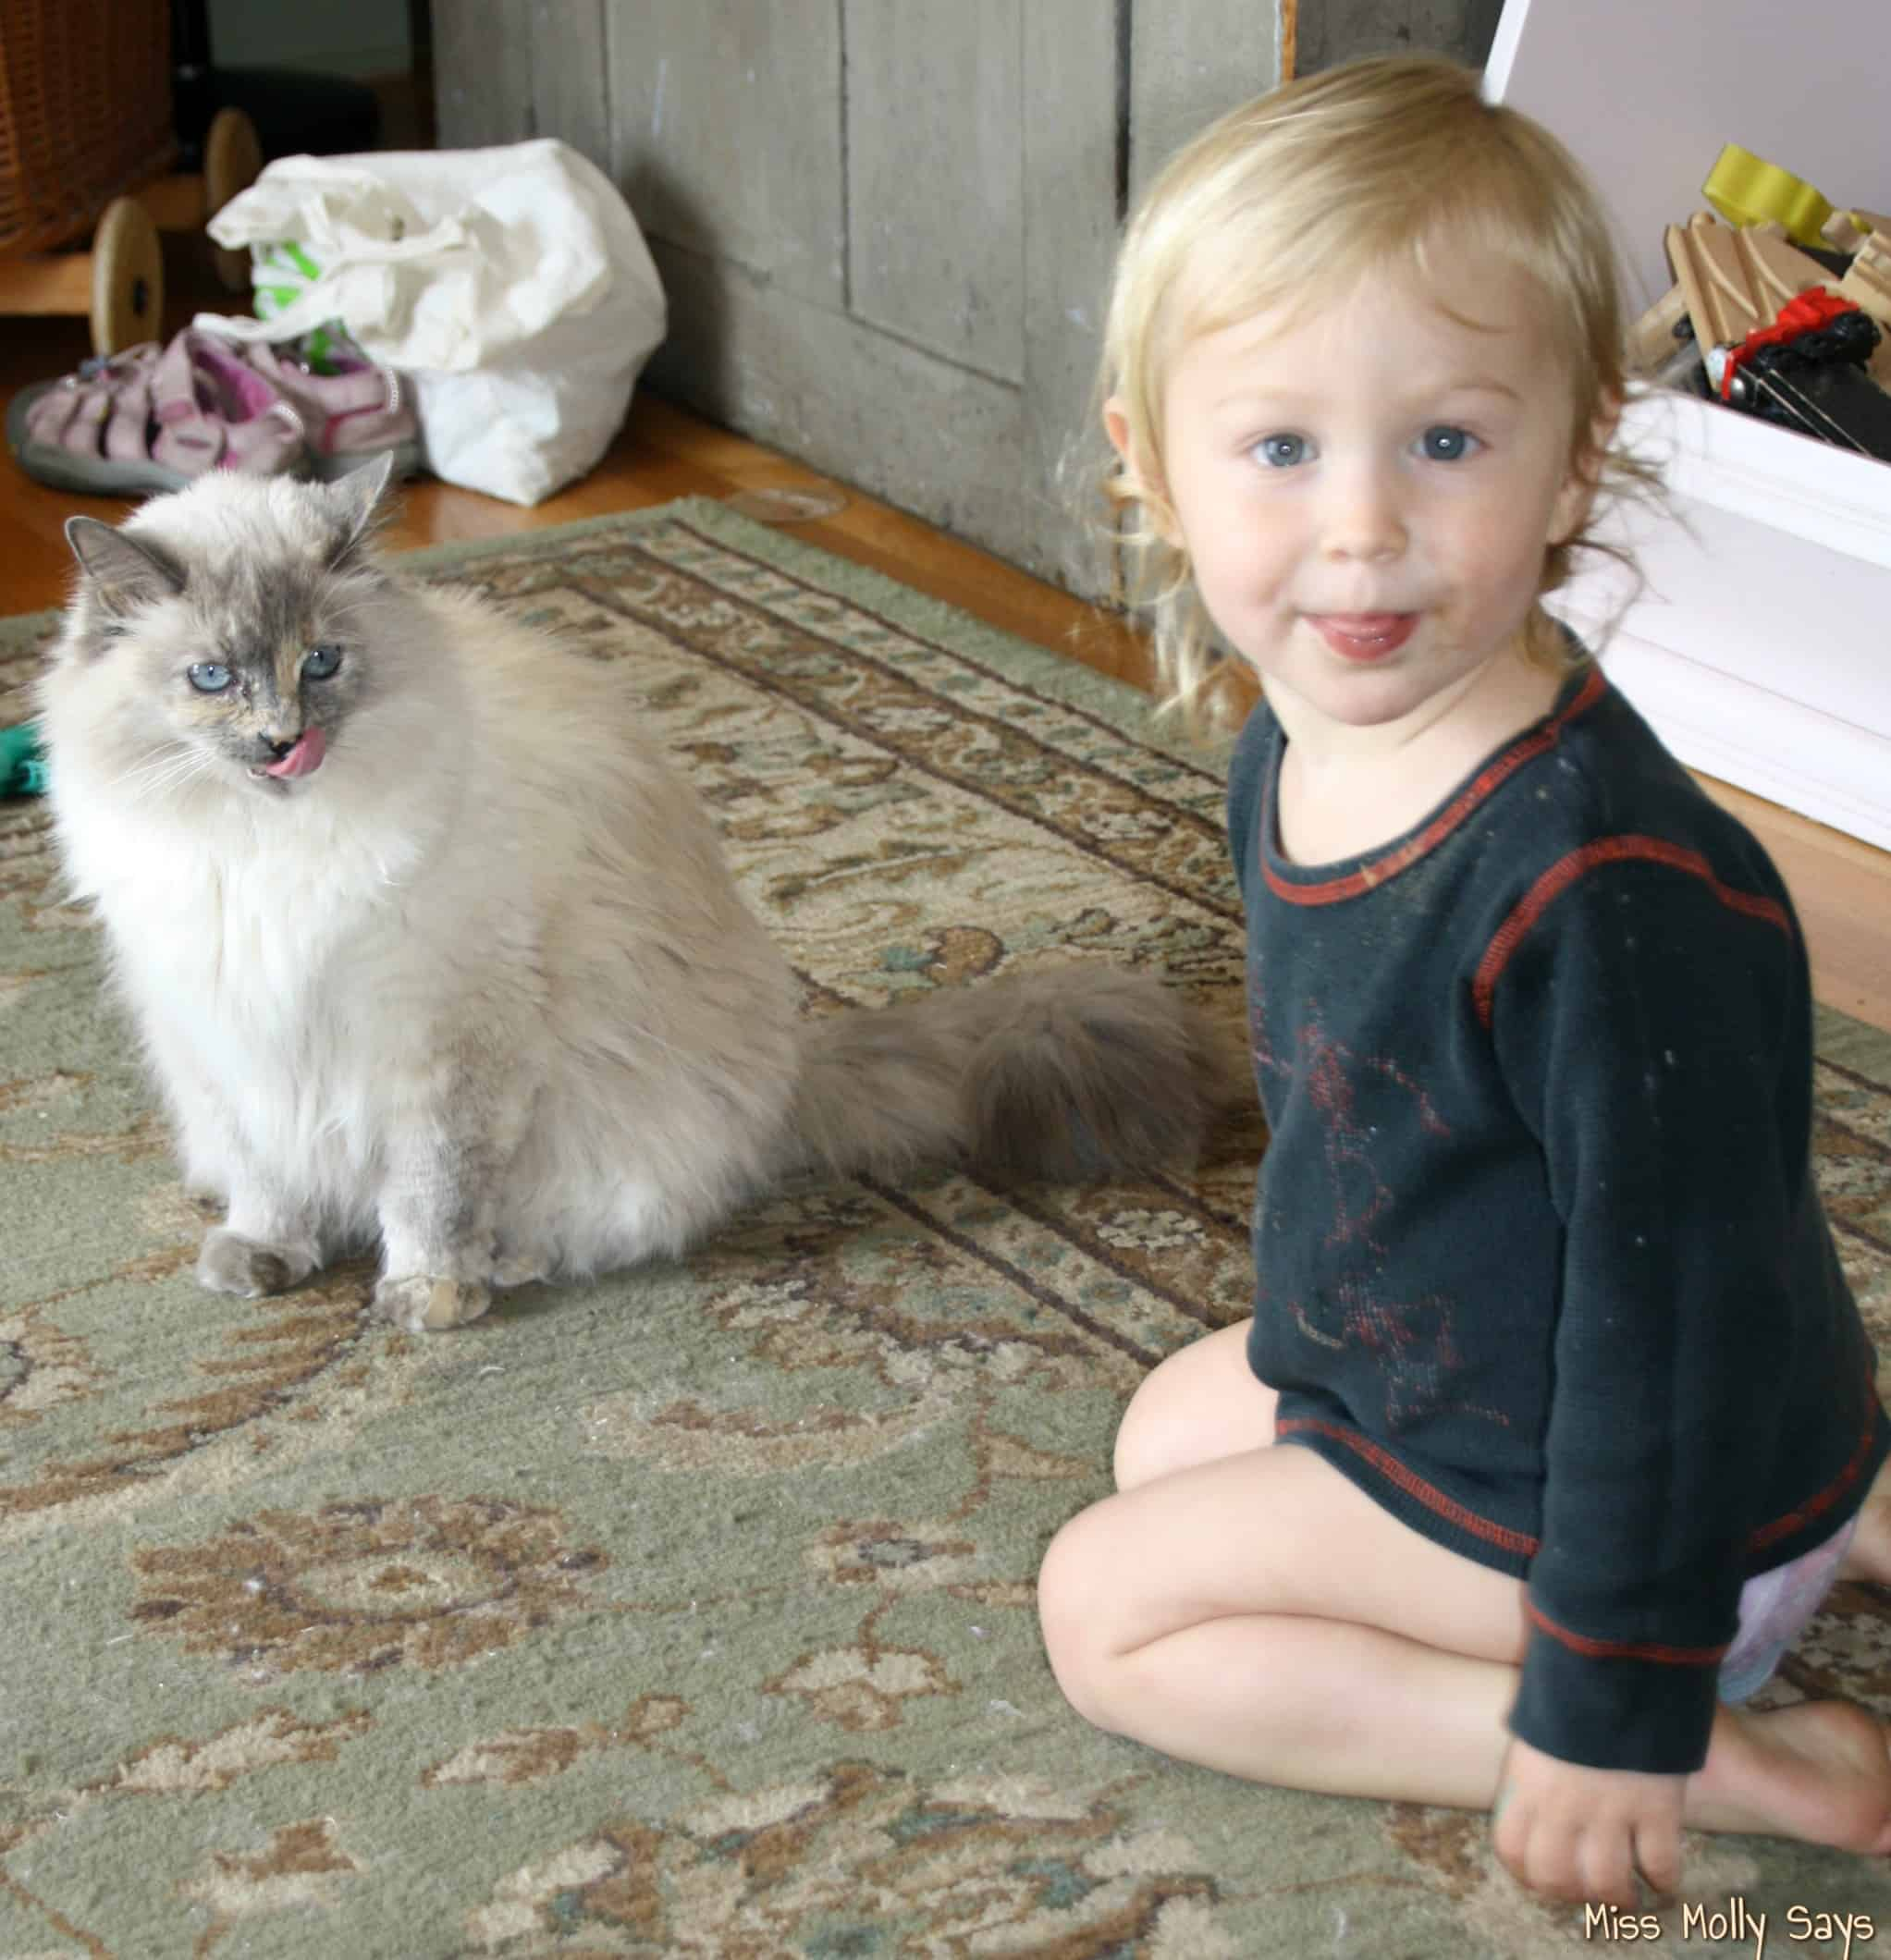 baby and cat both sticking out their tongues